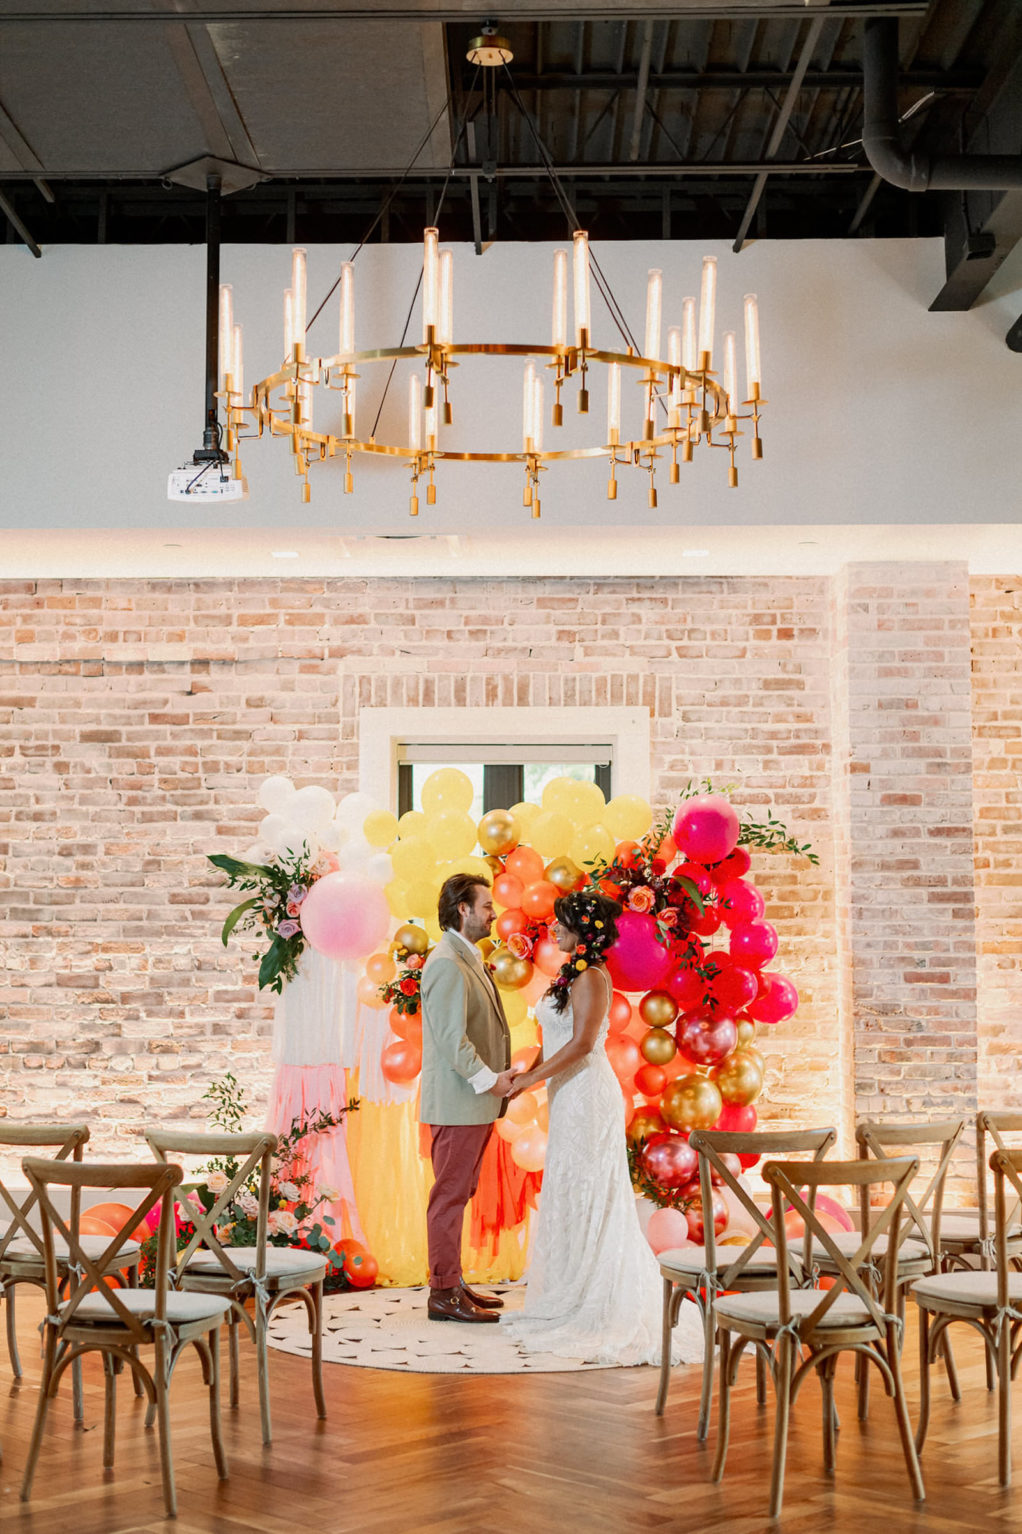 Bride and Groom Exchanging Wedding Vows, Whimsical and Colorful Wedding Decor, Yellow, Pink, Orange, White, Gold Fringe and Balloon Ceremony Backdrop, Wooden Cross Back Chairs, Gold and Candlestick Chandelier, White Brick Wall   Tampa Bay Wedding Photographer Dewitt for Love   St. Pete Modern Industrial Wedding Venue Red Mesa Events   Wedding Chair Rentals Kate Ryan Event Rentals